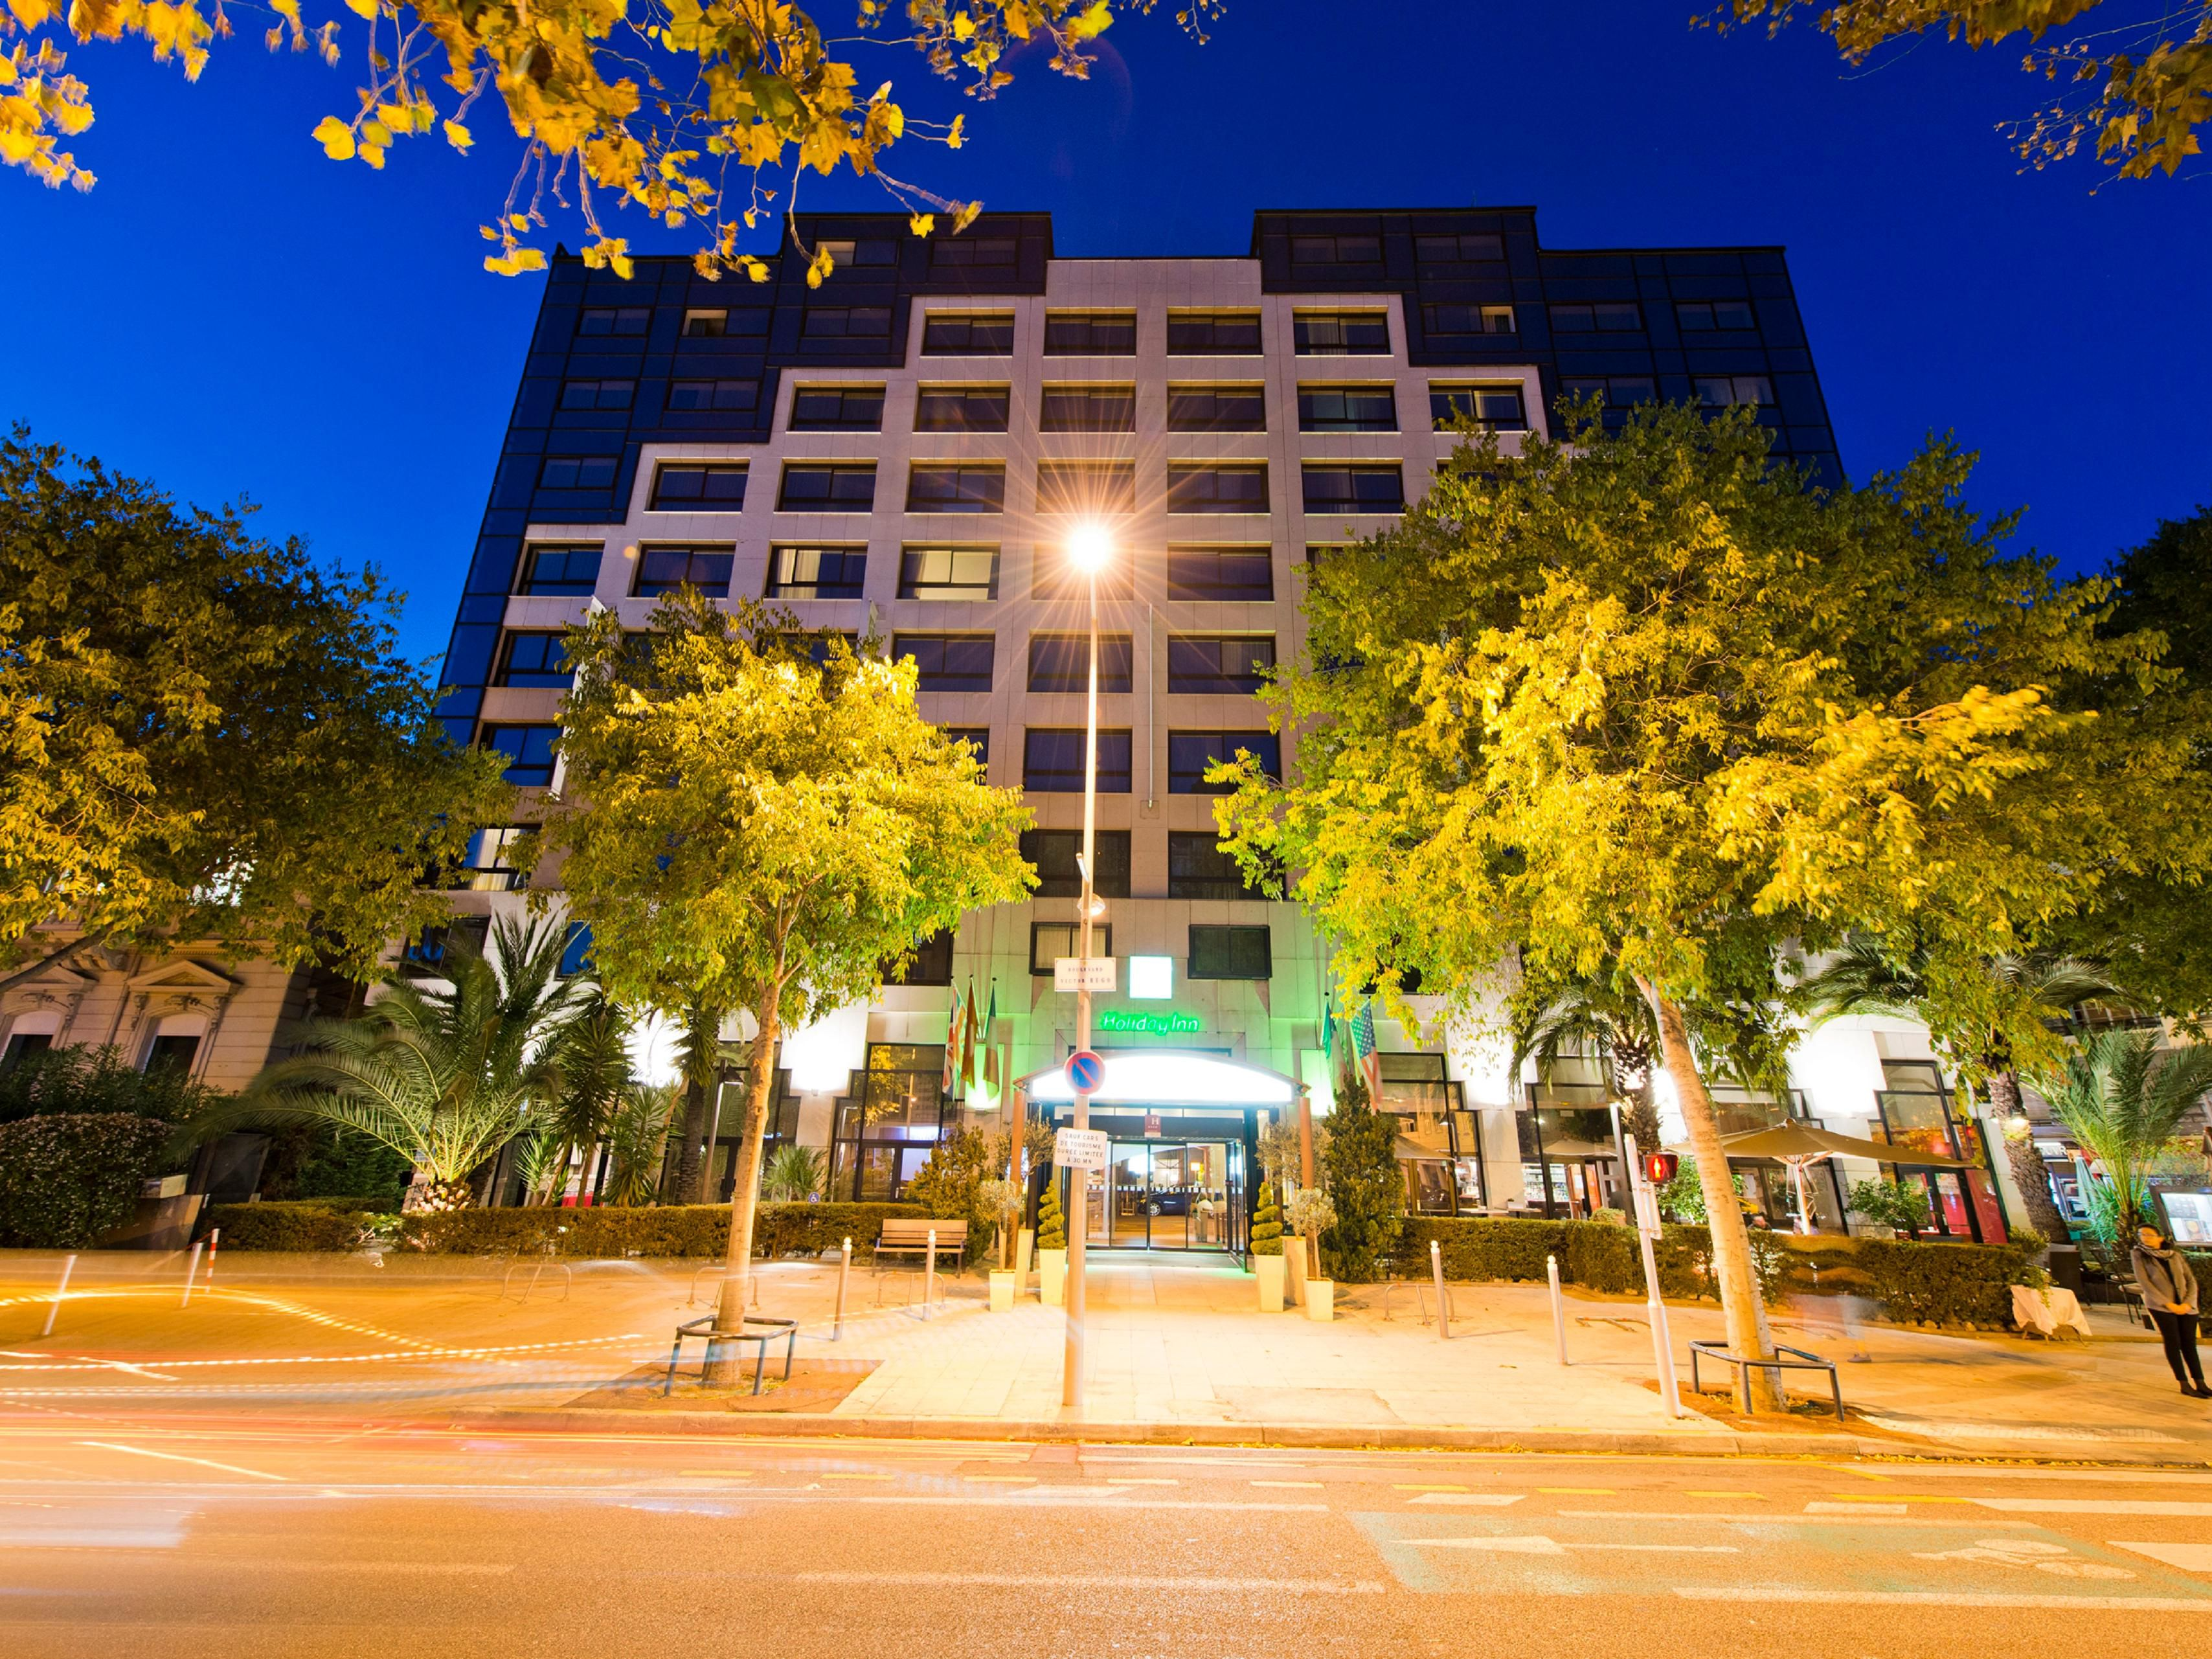 find nice hotels top 4 hotels in nice france by ihg